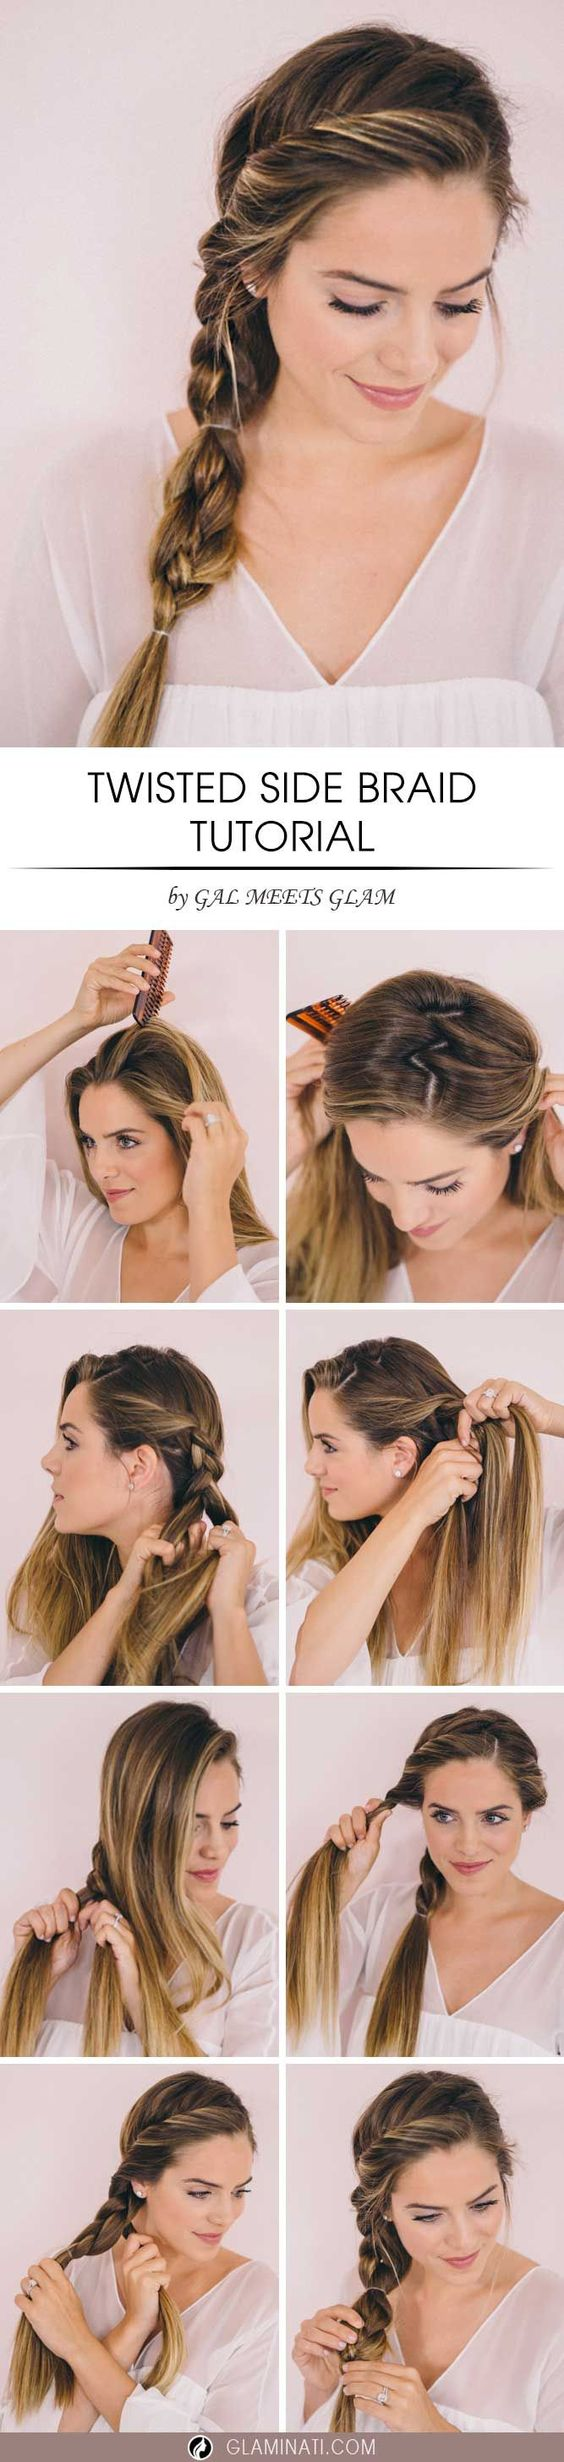 These 11 Easy & Quick Braids Will Save You SO MUCH TIME! There are half up styles, pony tails, and more!